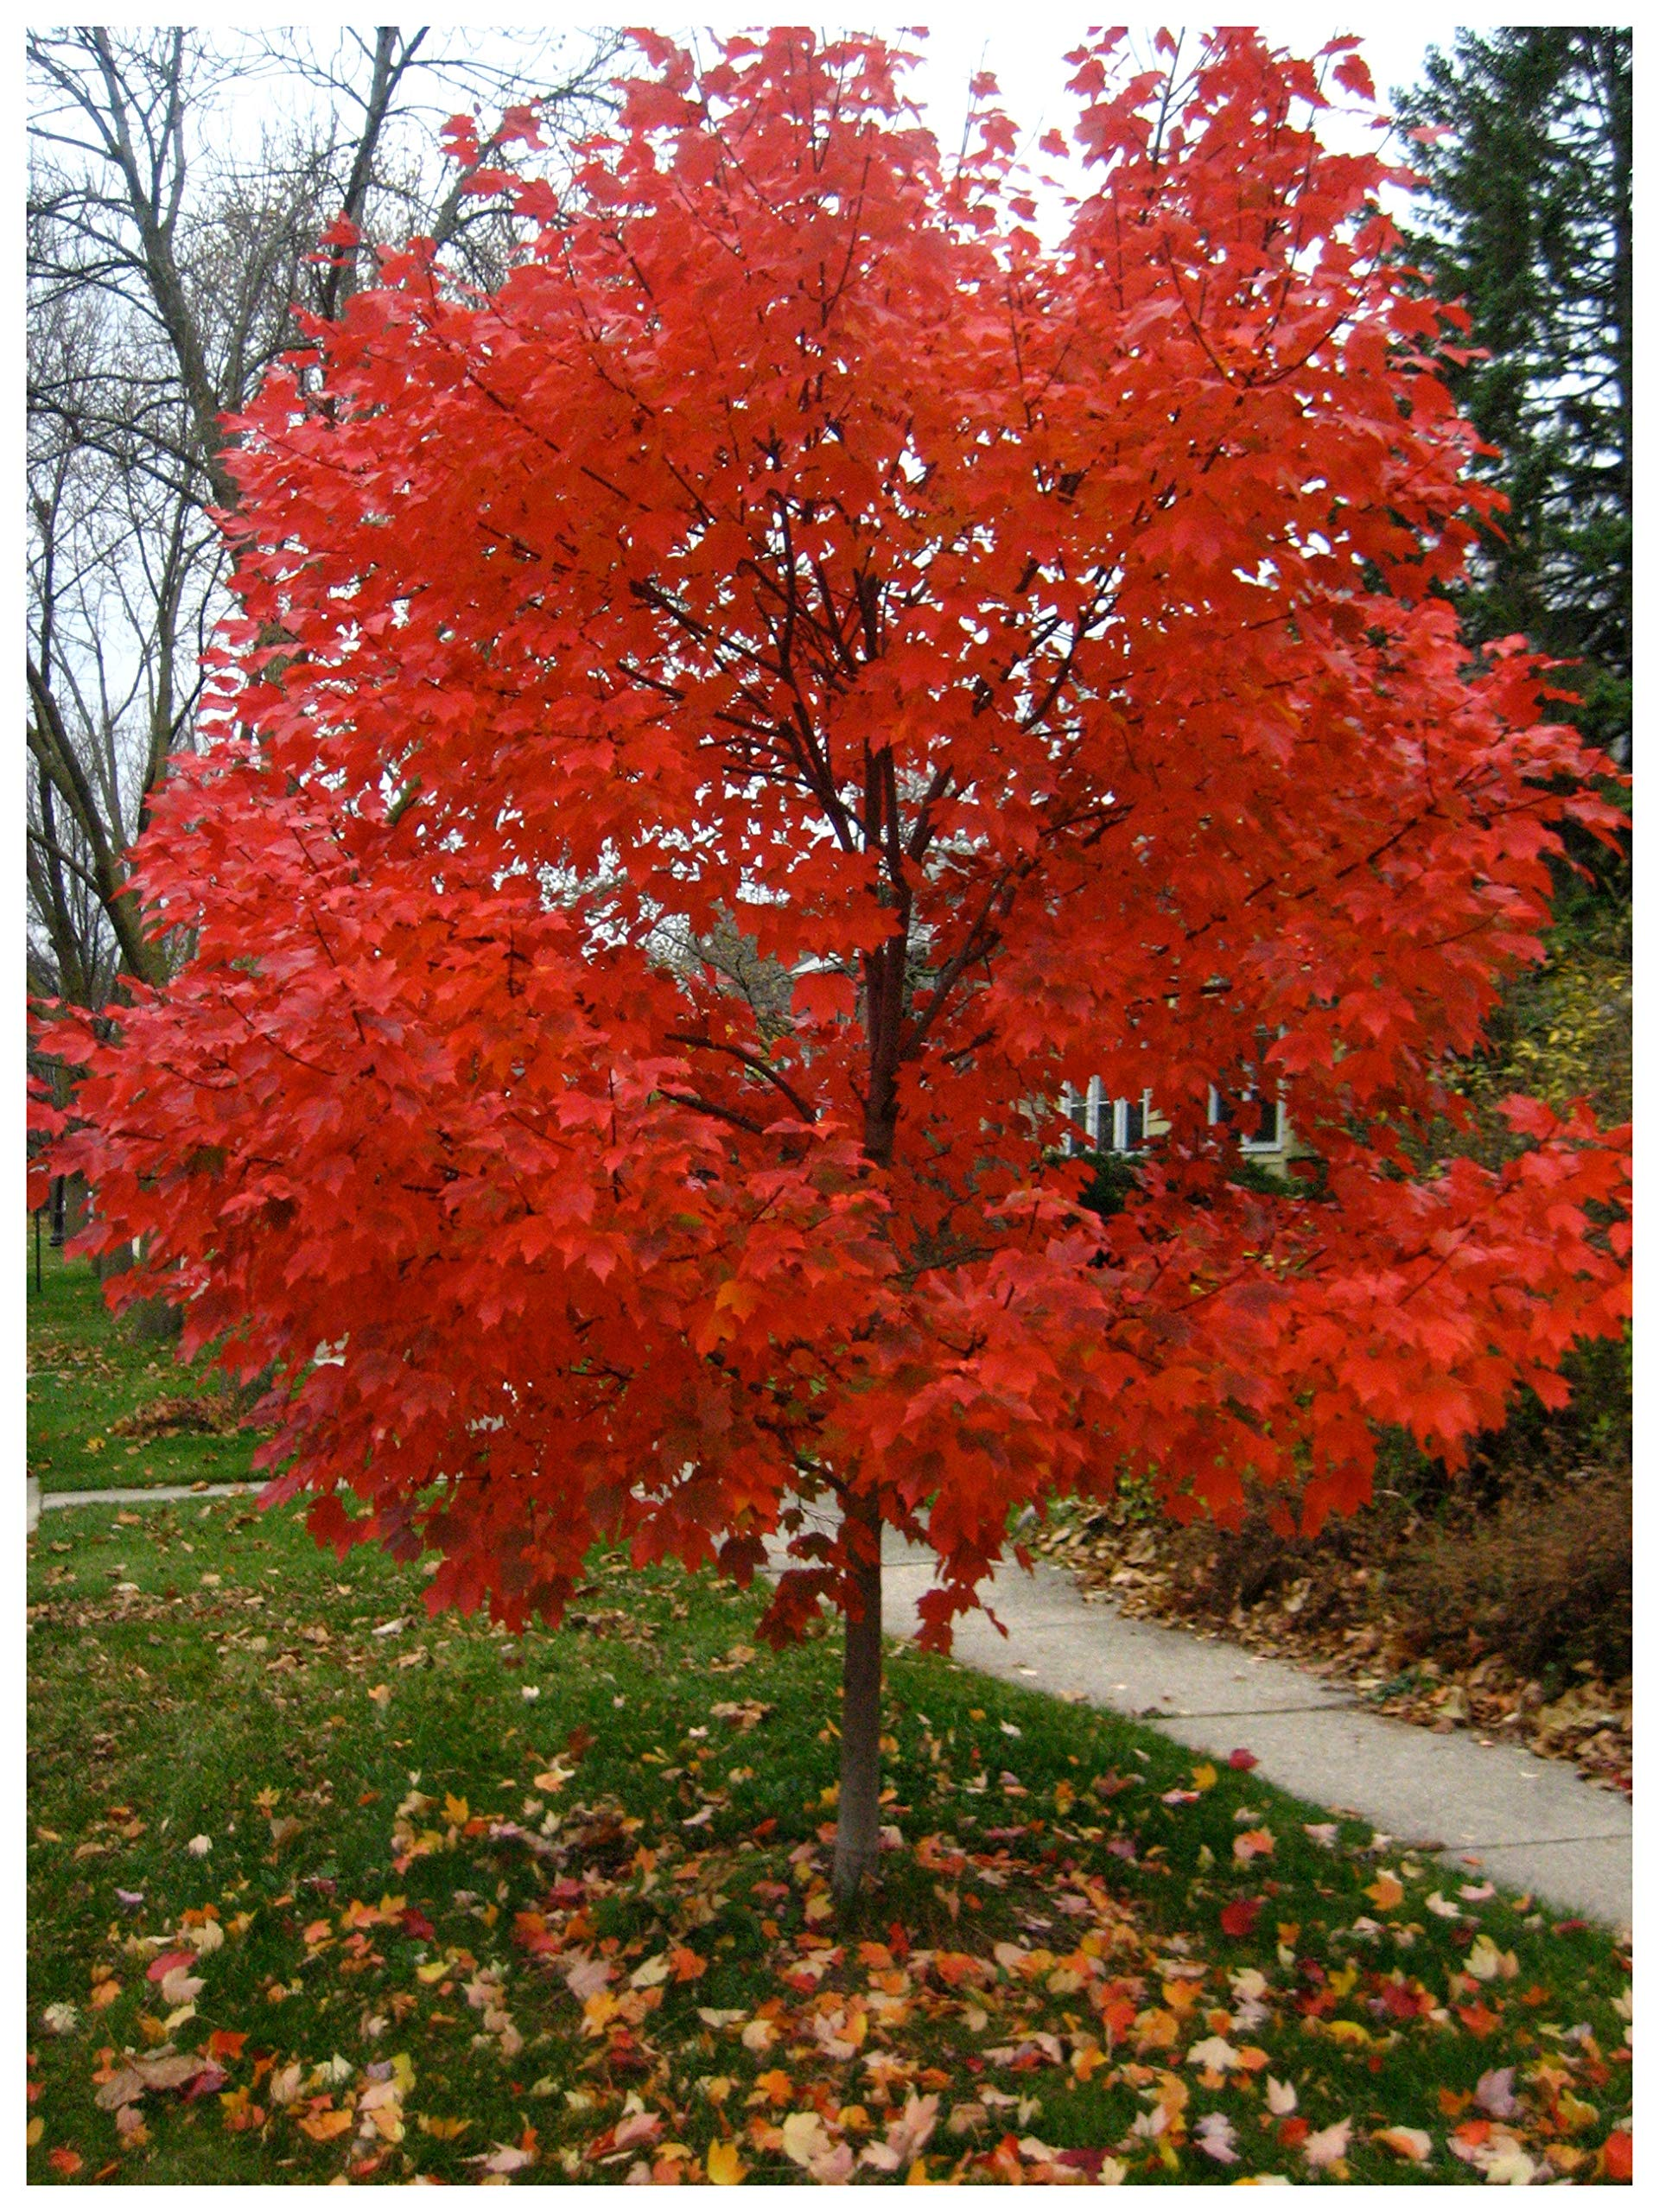 Autumn Blaze Red Maple Tree - Acer saccharinum - Heavy Established Roots - Two Gallon Potted - 1 plant by Growers Solution by Grower's Solution